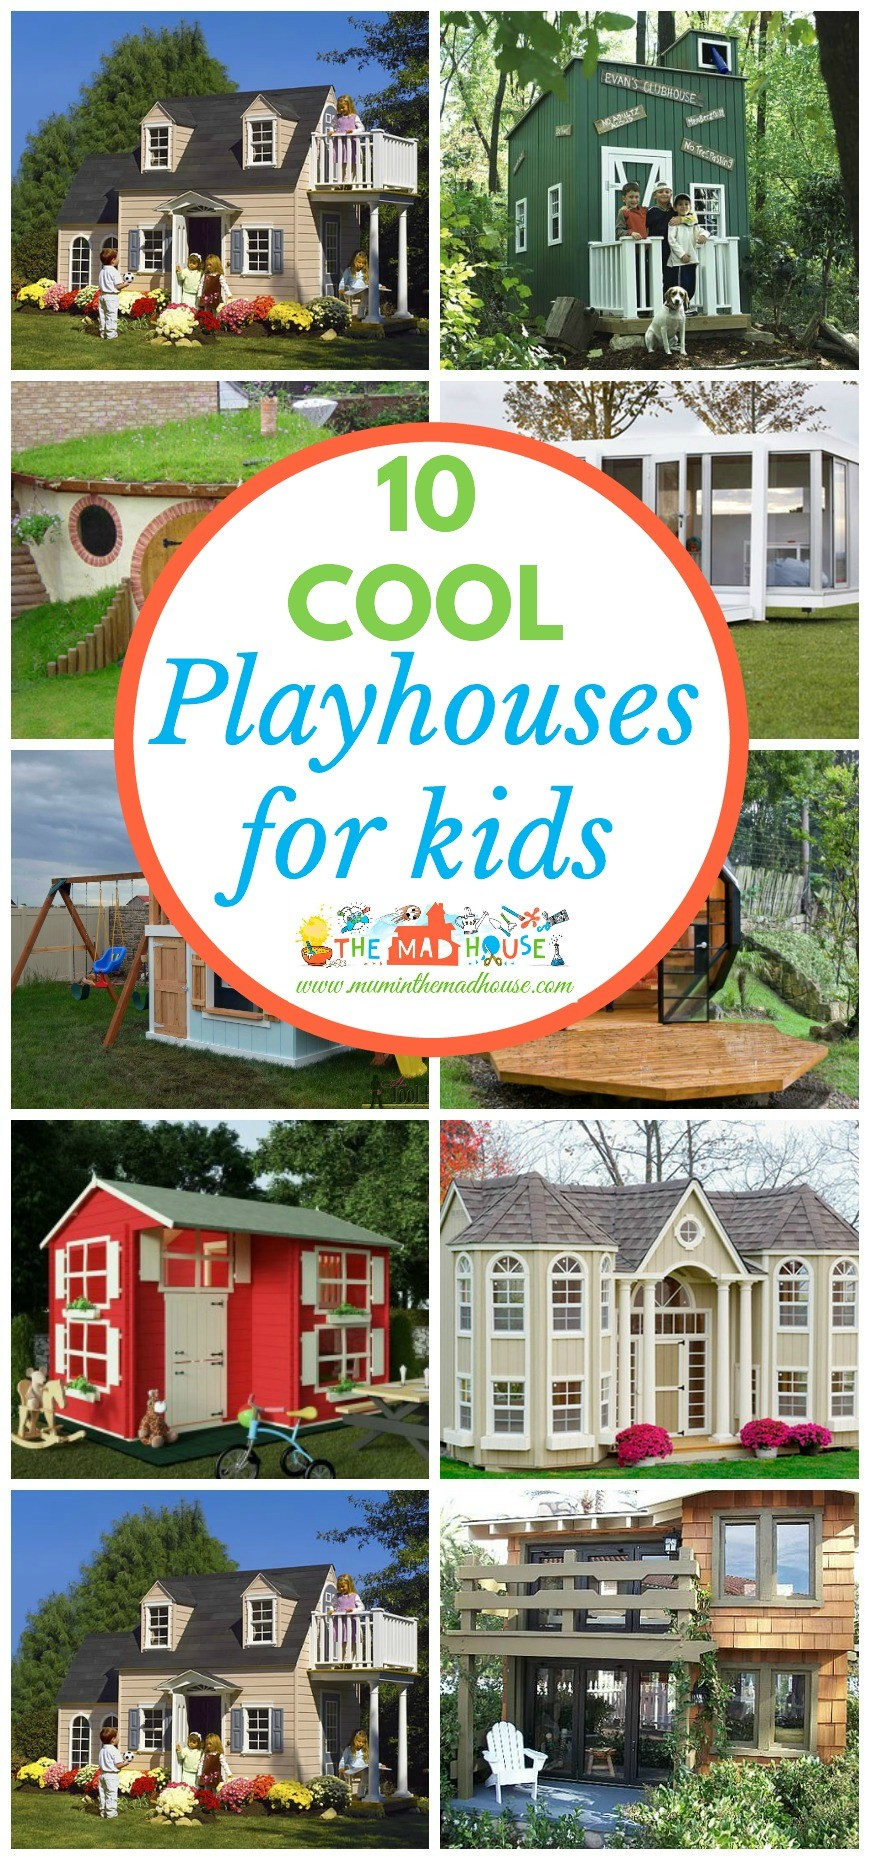 10 of the coolest playhouses for kids. These playhouses have to be seen to be believed. Who wouldn't want to have a playhouse like these. We want #8.